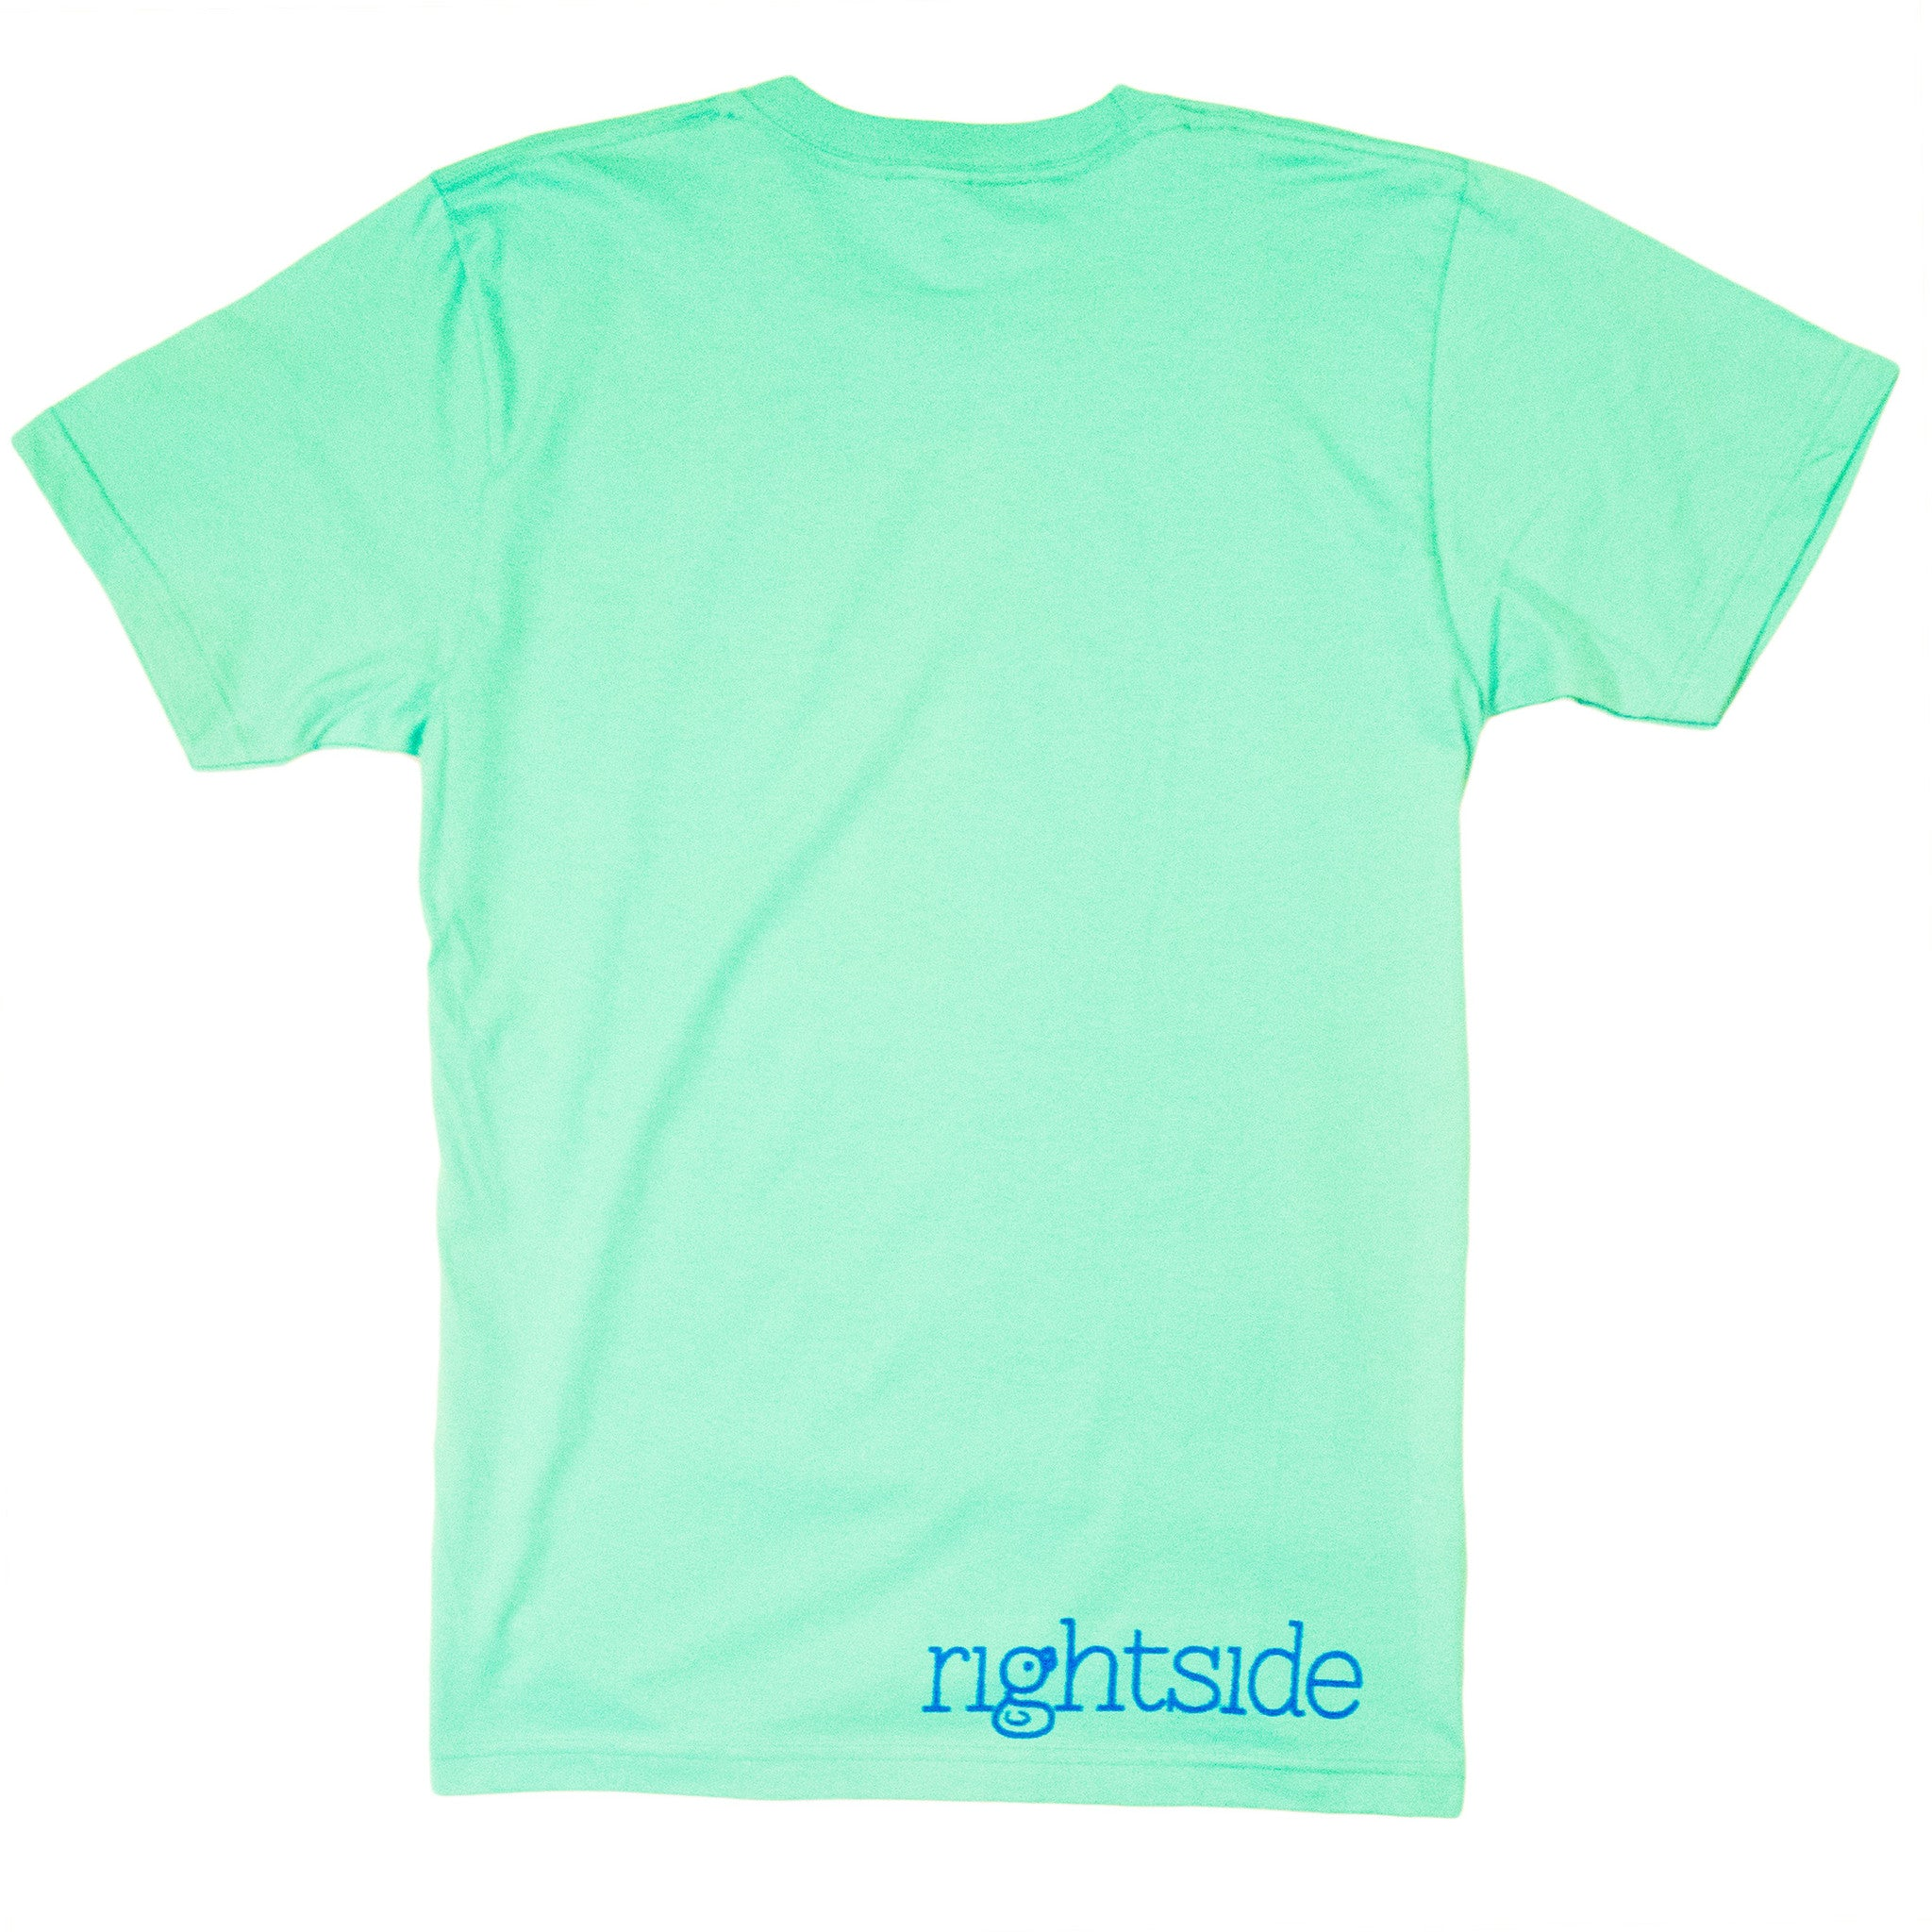 Bryan, 3rd grade - Adult T-shirt - Rightside Shirts - 3